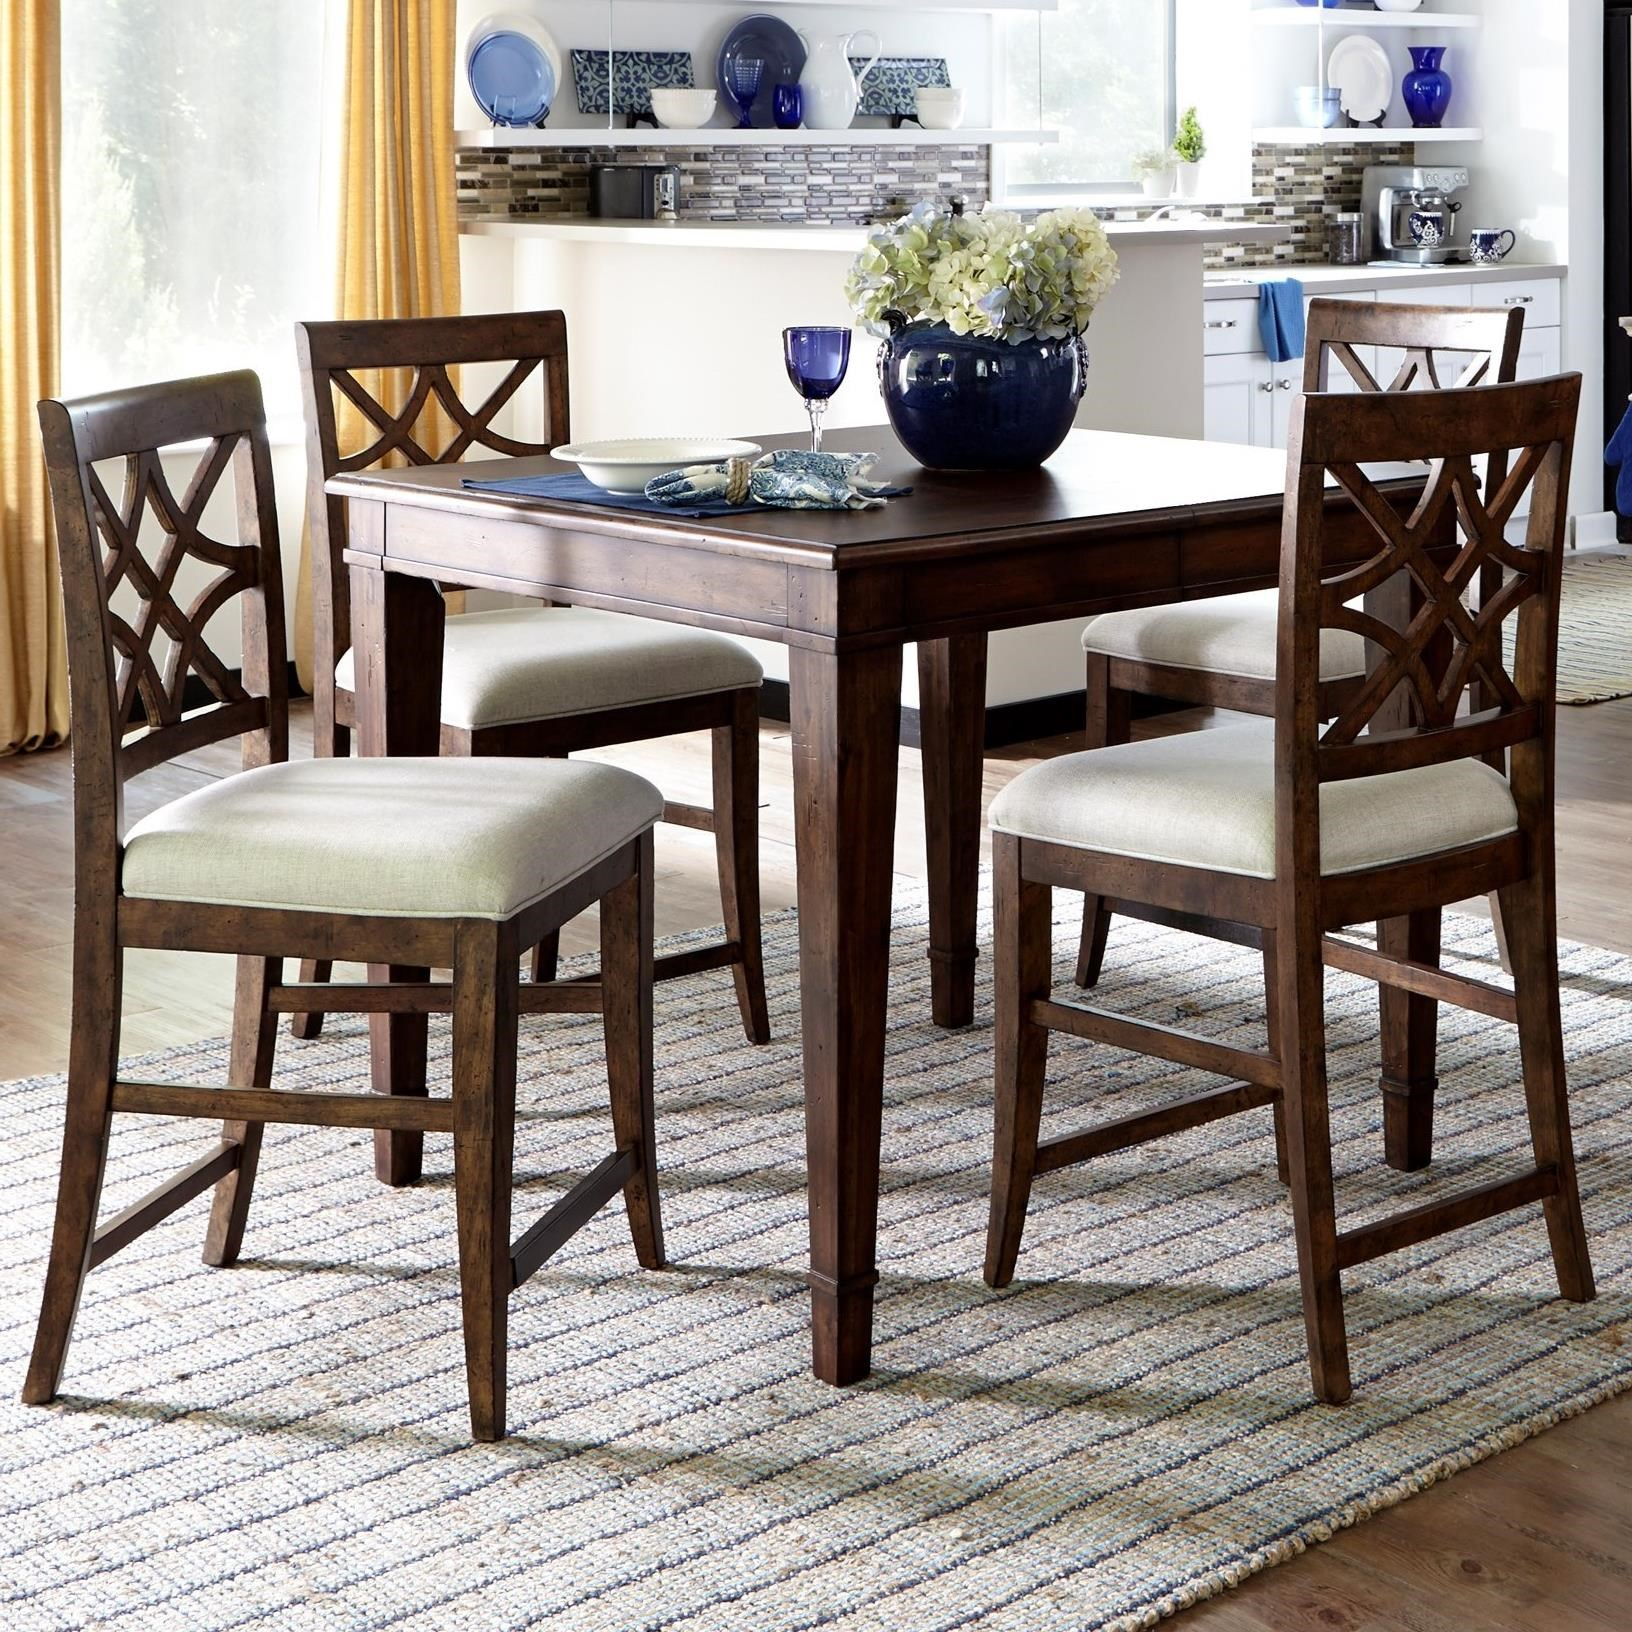 Trisha Yearwood Home 5 Piece Counter Height Table and Chairs Set by Trisha Yearwood Home Collection by Klaussner at Sam Levitz Outlet